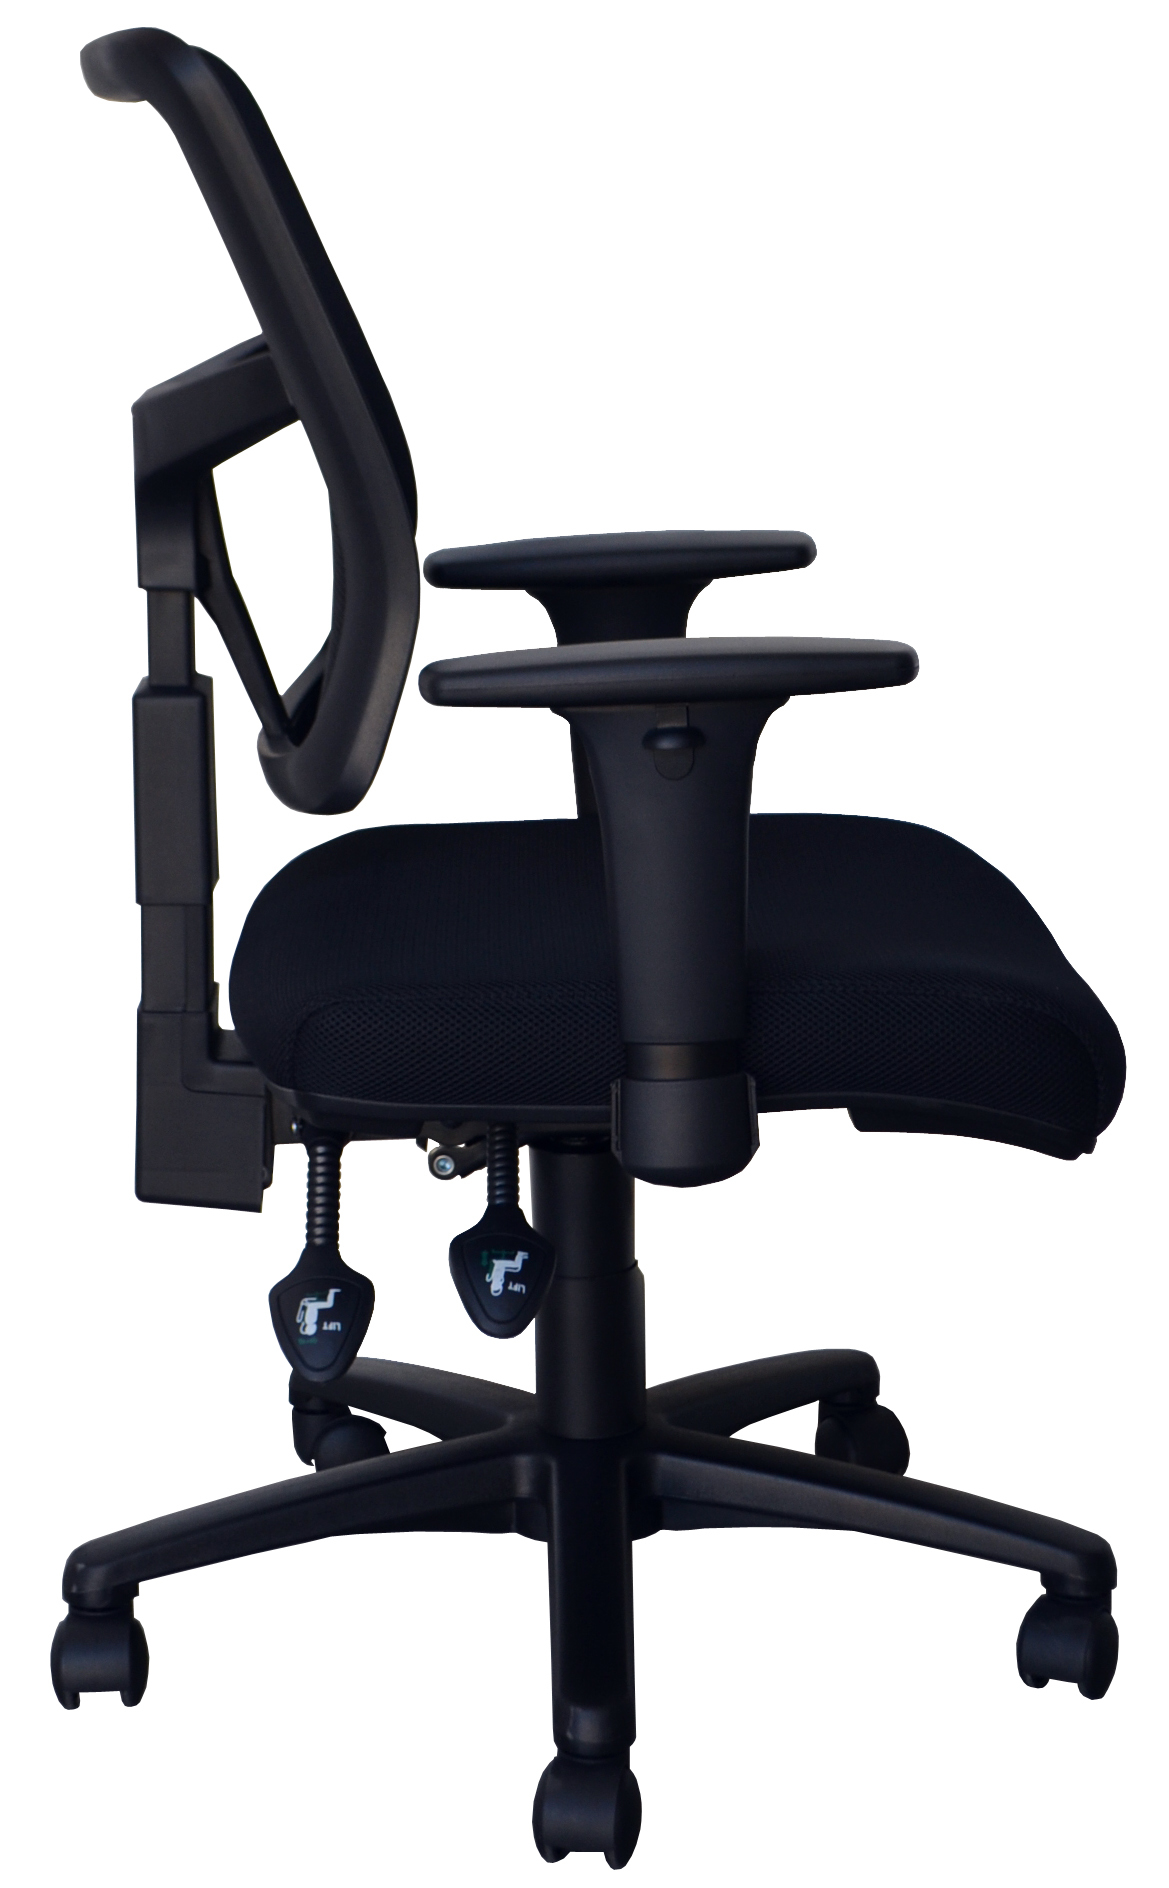 Direct Ergonomics | Sydney Office Furniture | Ergonomic Furniture | Ergonomic Seating | Excutive and Task Seating | Meeting Room Chair | Breeze 150